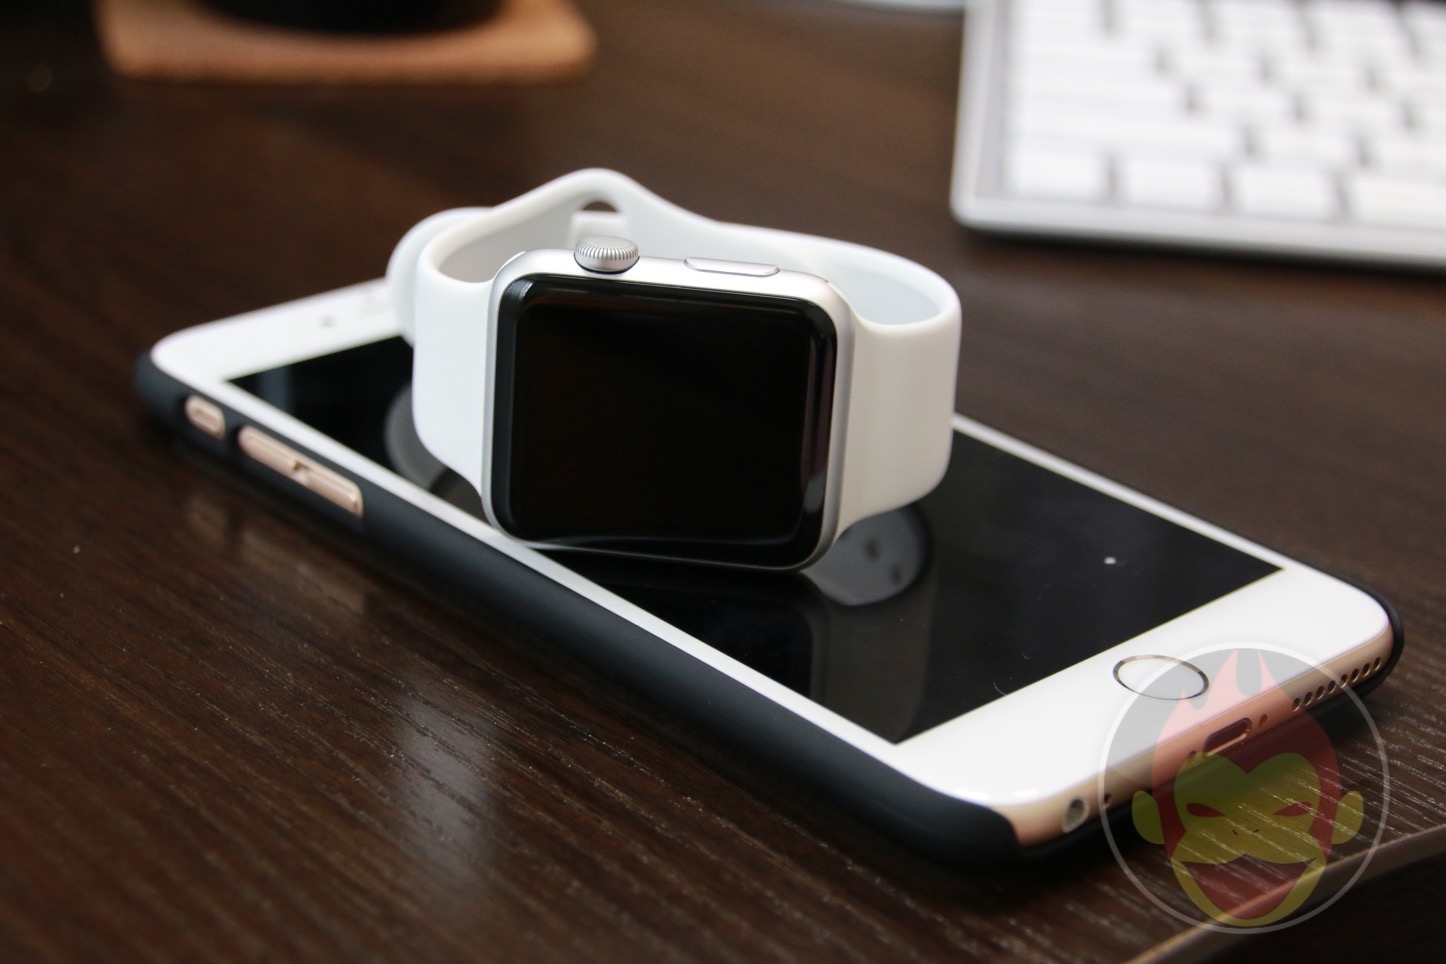 Apple Watch with iPhone 01